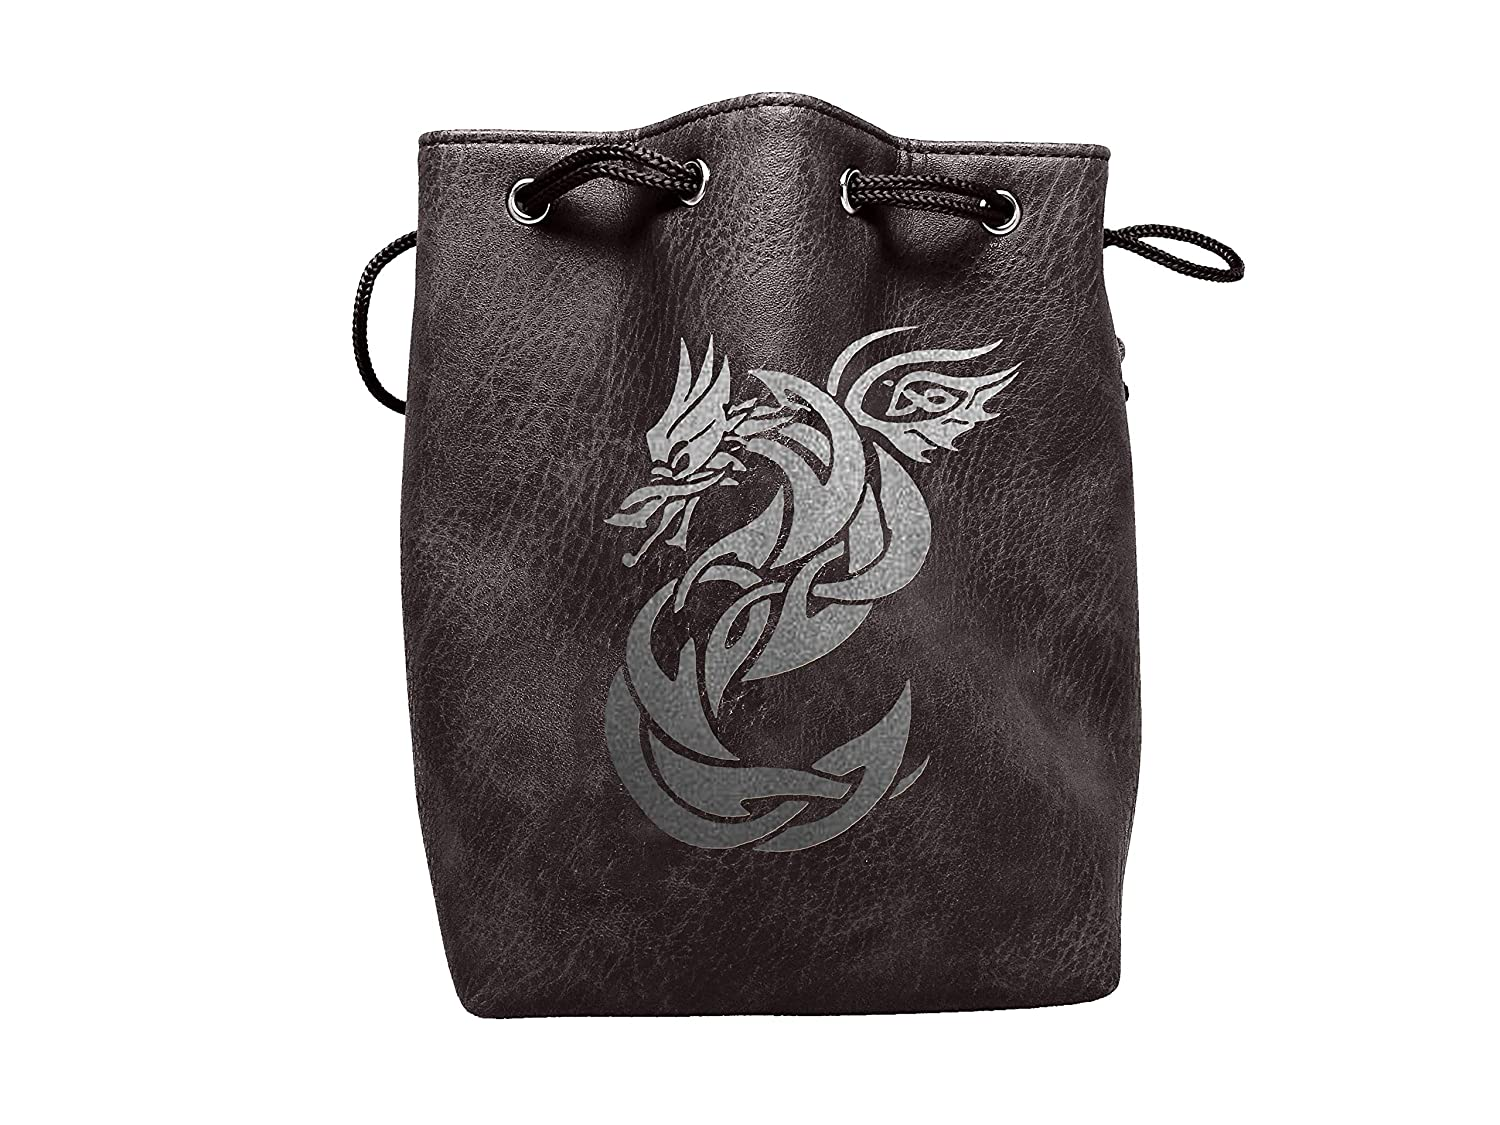 Black Leather Lite Large Dice Bag Celtic Knot Dragon Design - Black Faux Leather Exterior Lined Interior - Stands up on its Own Holds 400 16mm Polyhedral Dice   B07GD7PHZJ